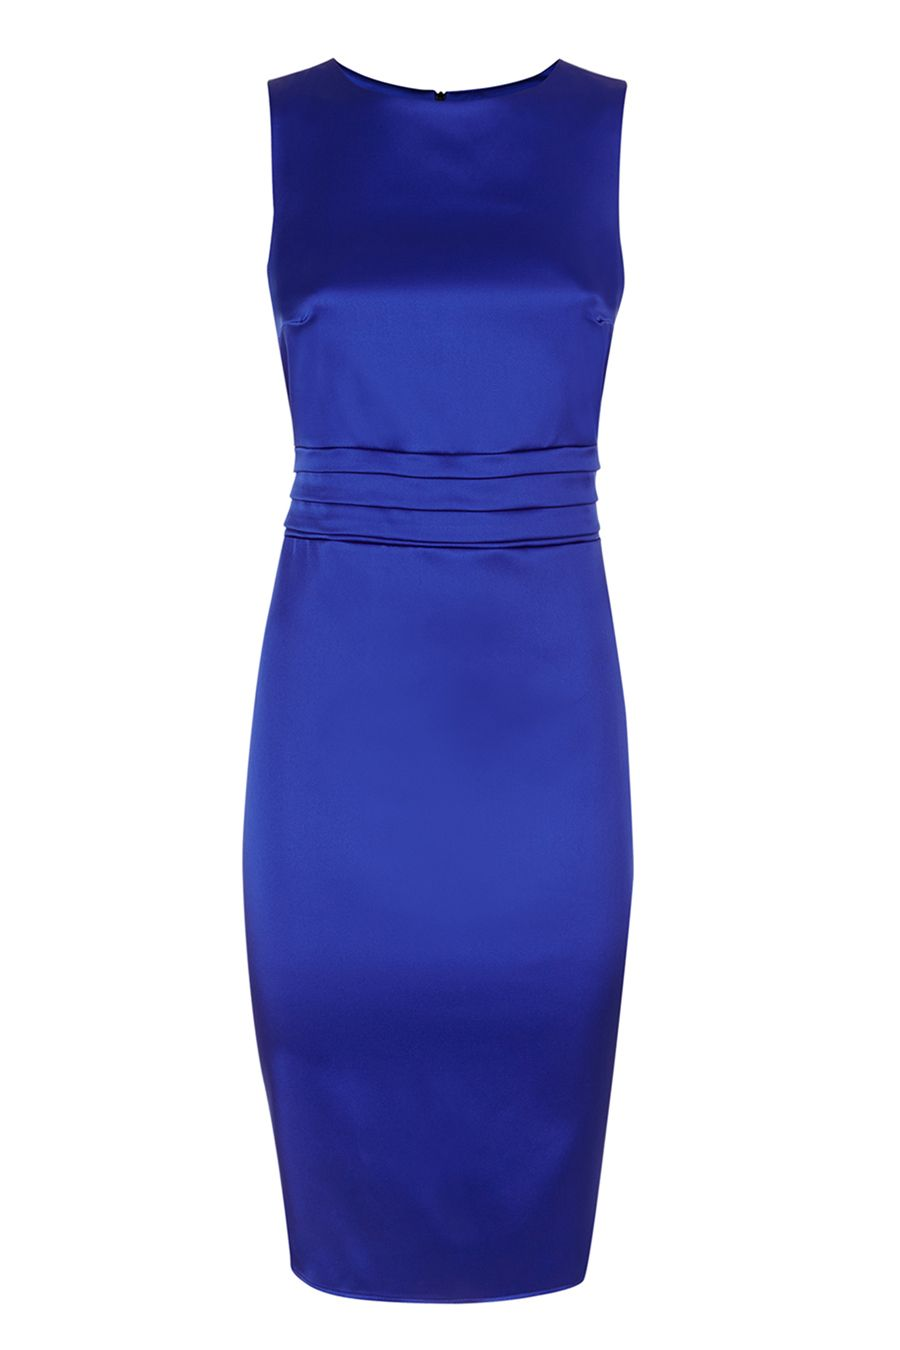 HotSquash Silky dress with tie belt and pleat, Royal Blue